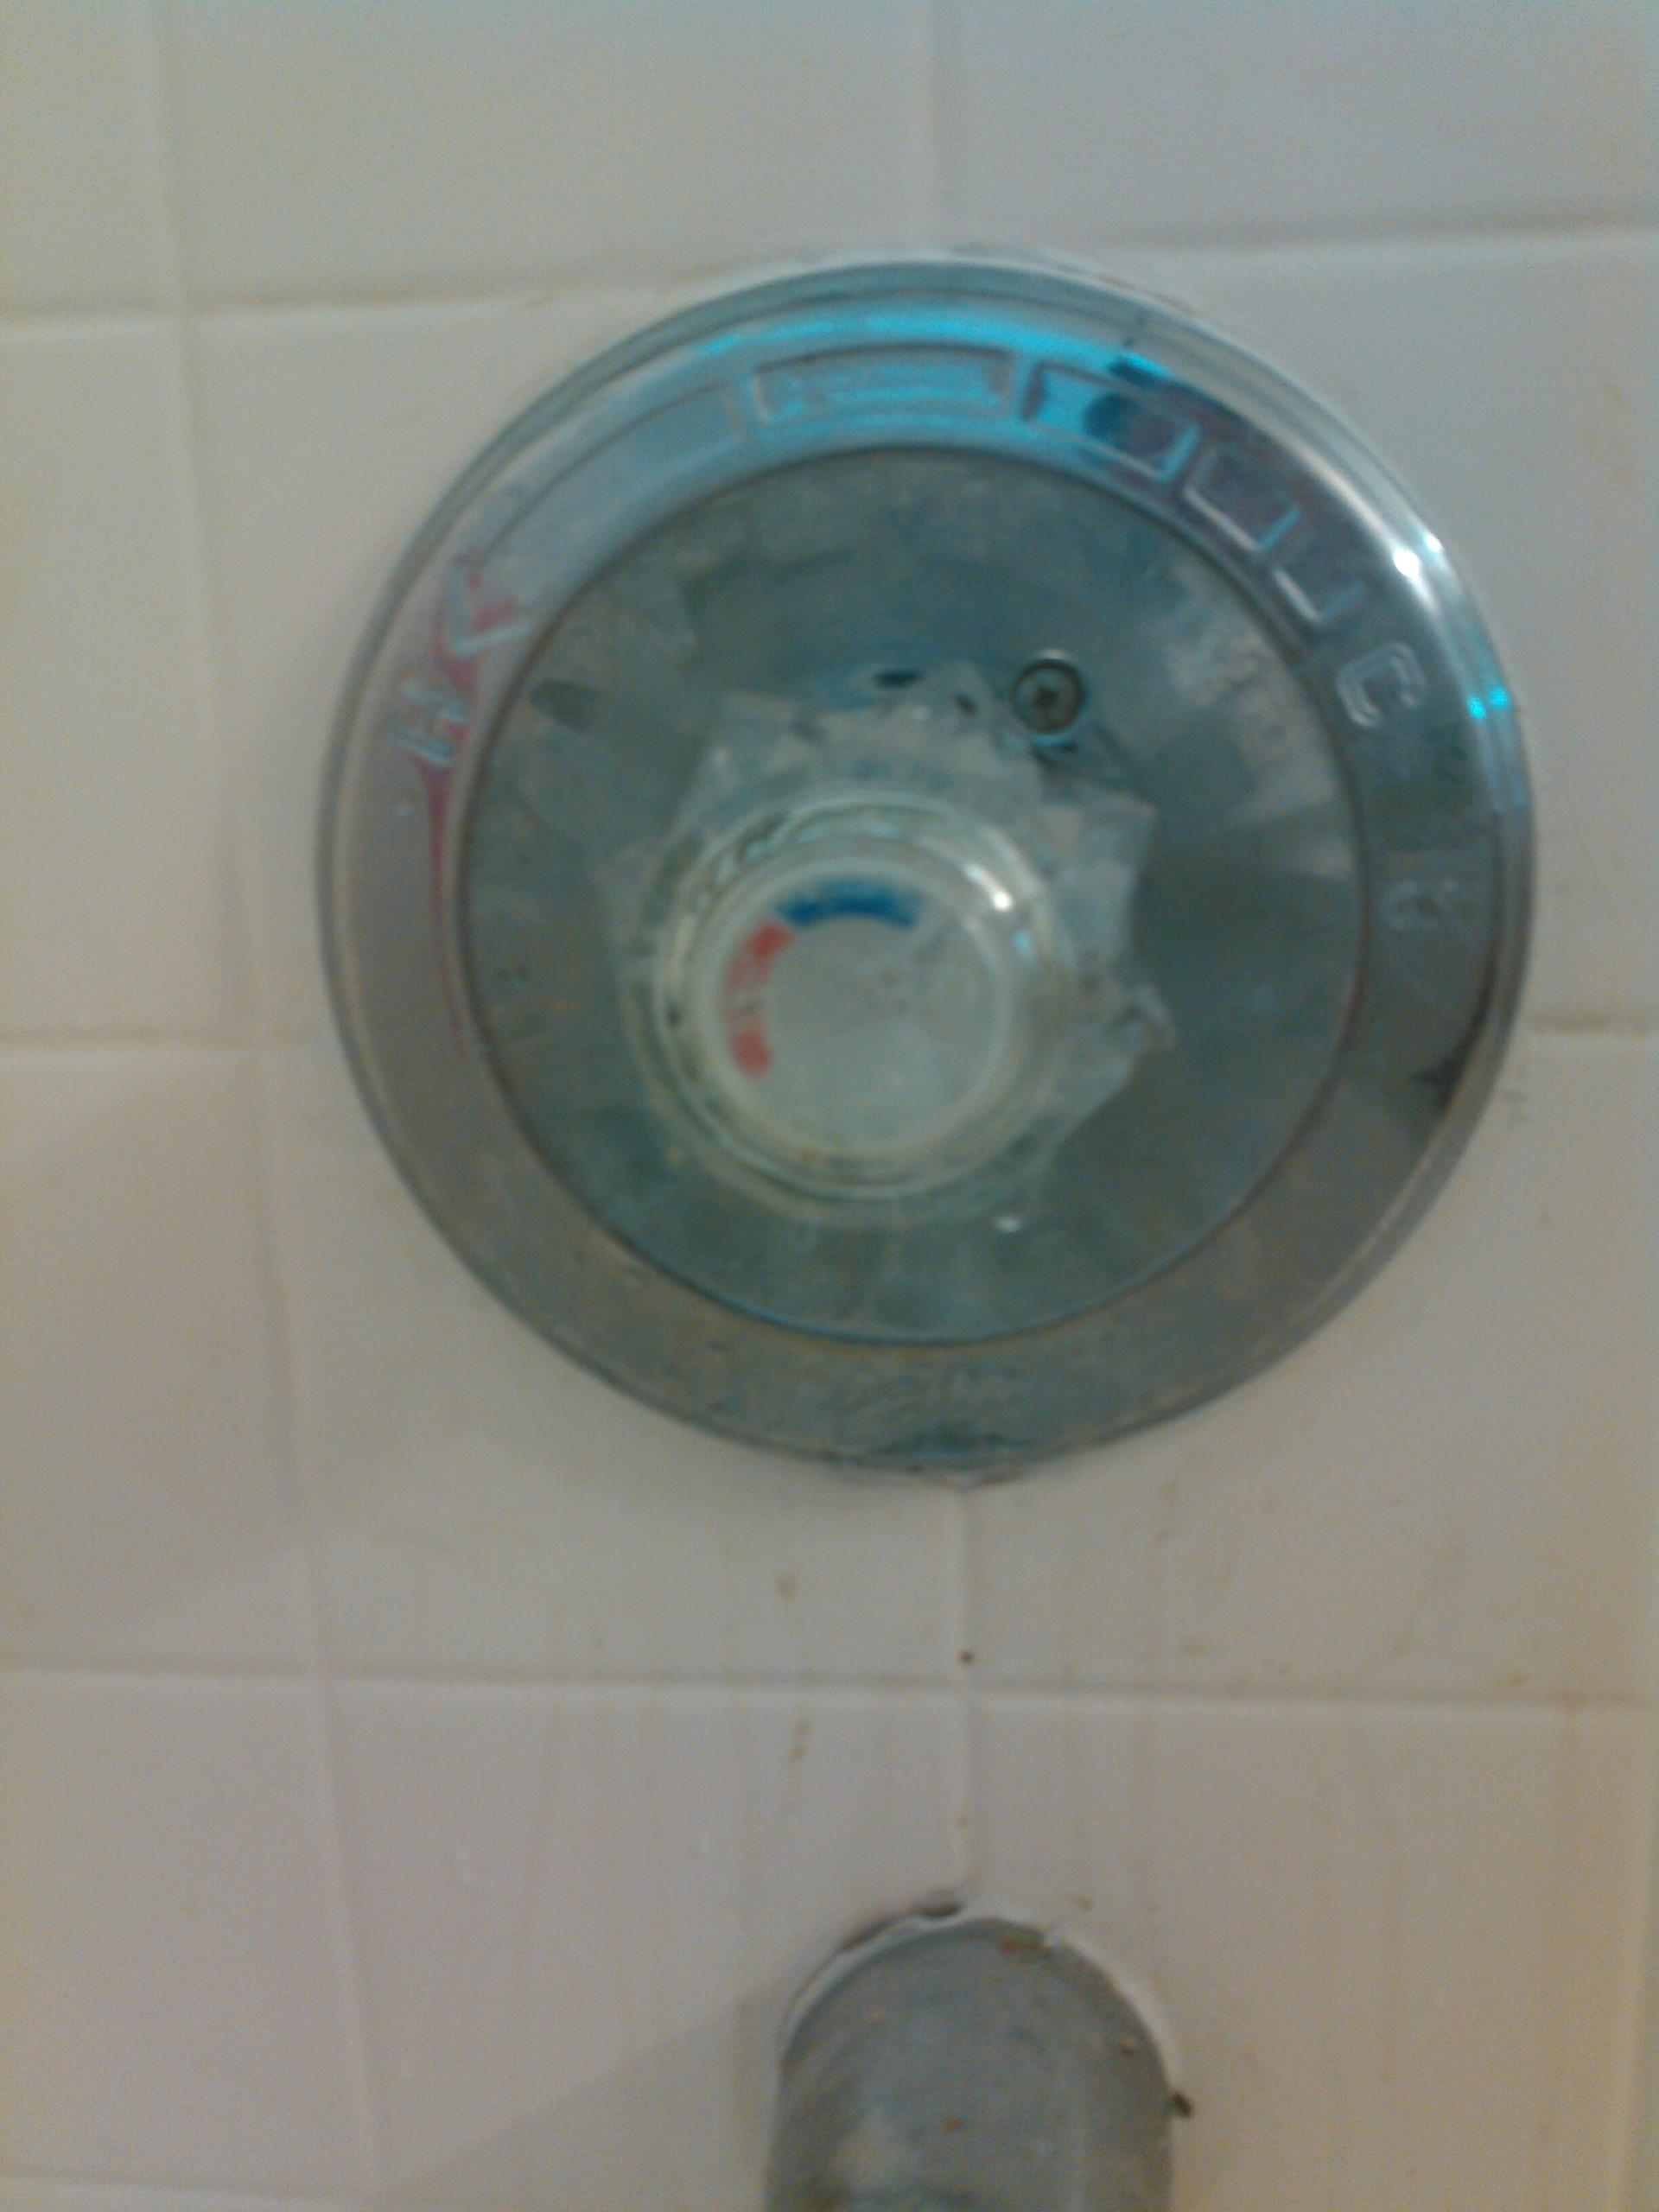 South El Monte, CA - Replaced cartridges on 2 Delta shower valves